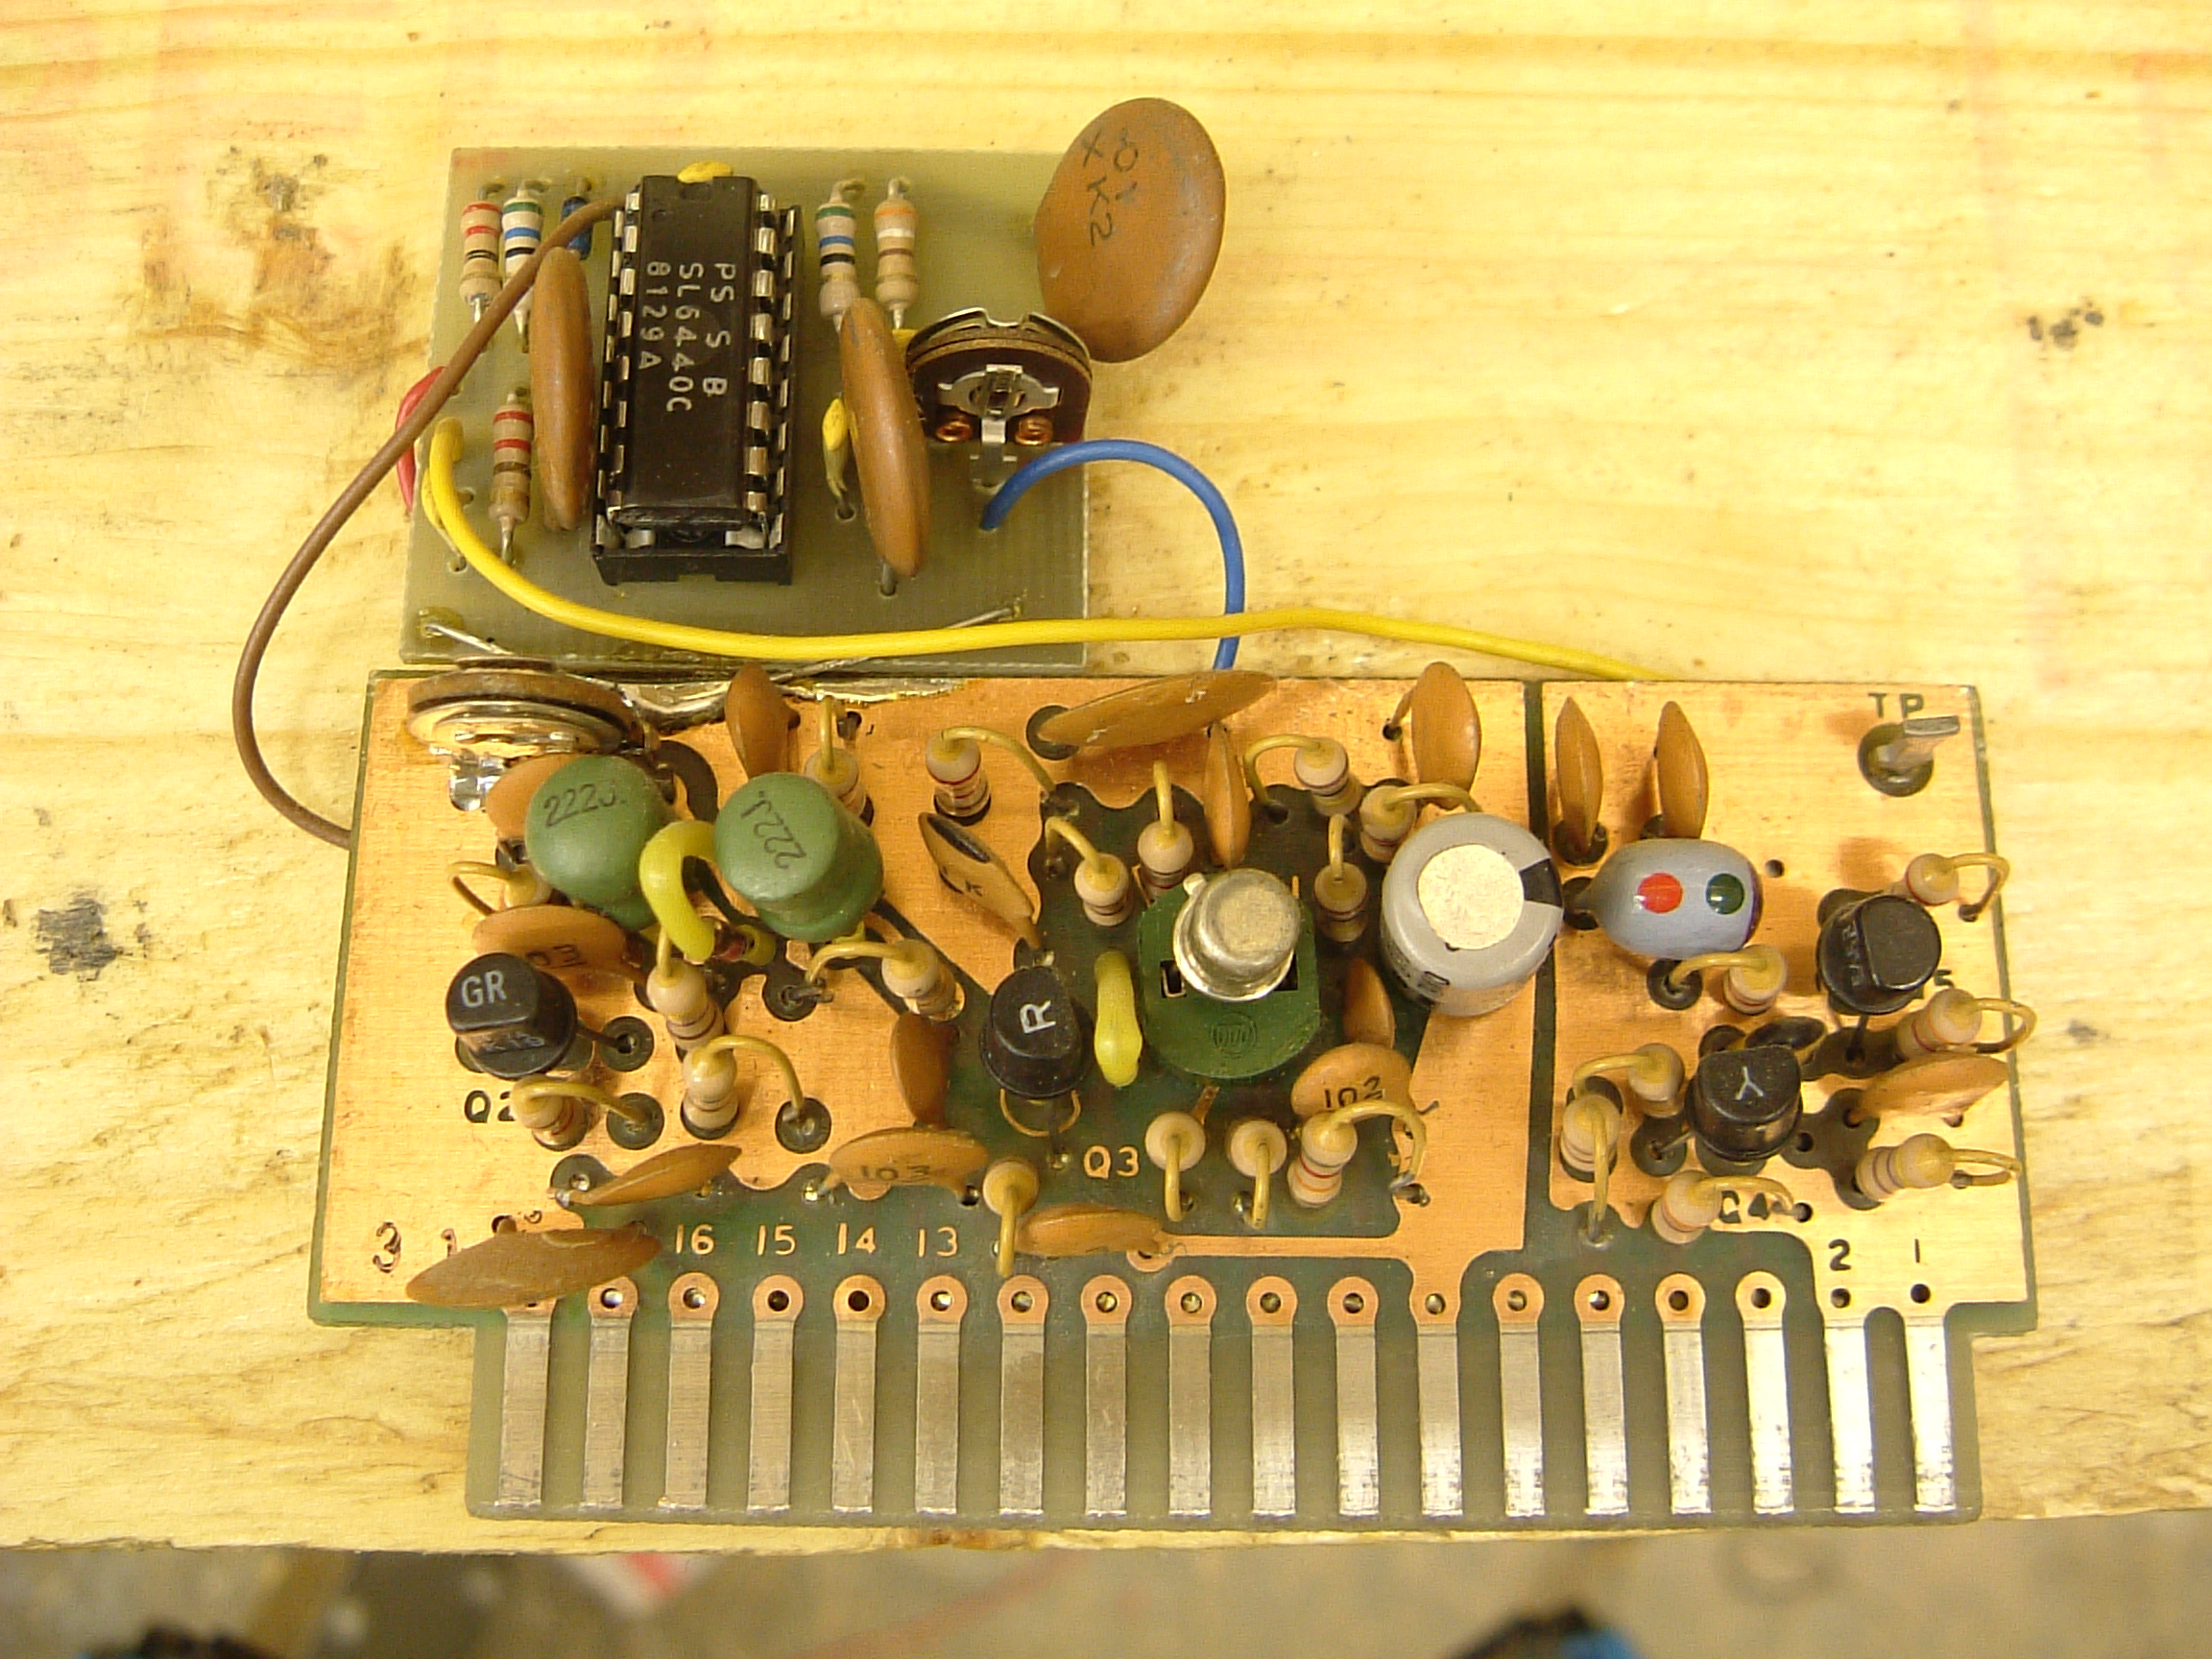 ft101_mod1 Wiring Relay Omron on